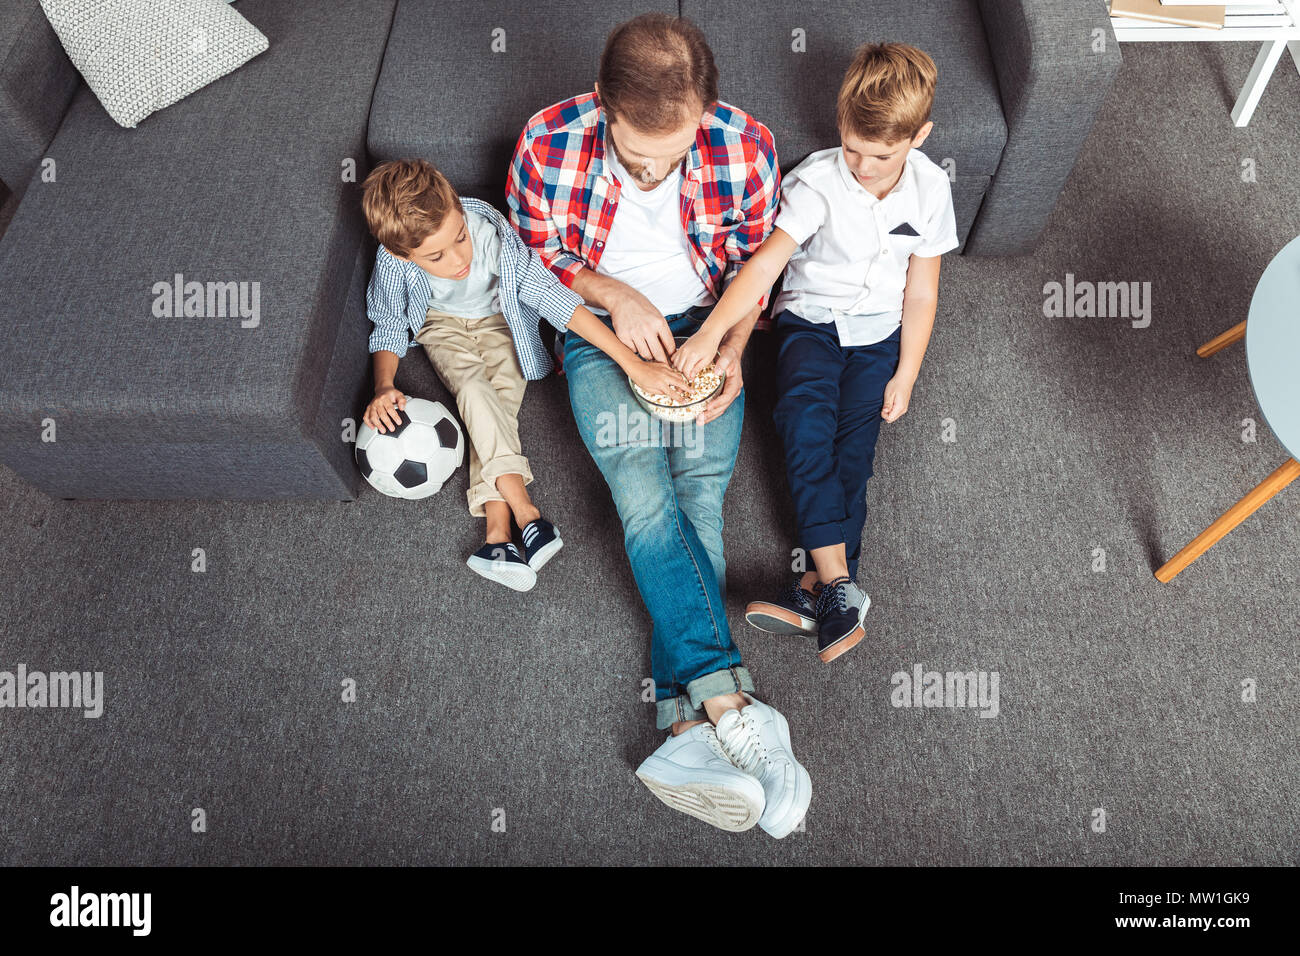 high angle view of father with sons eating popcorn while watching soccer match at home - Stock Image